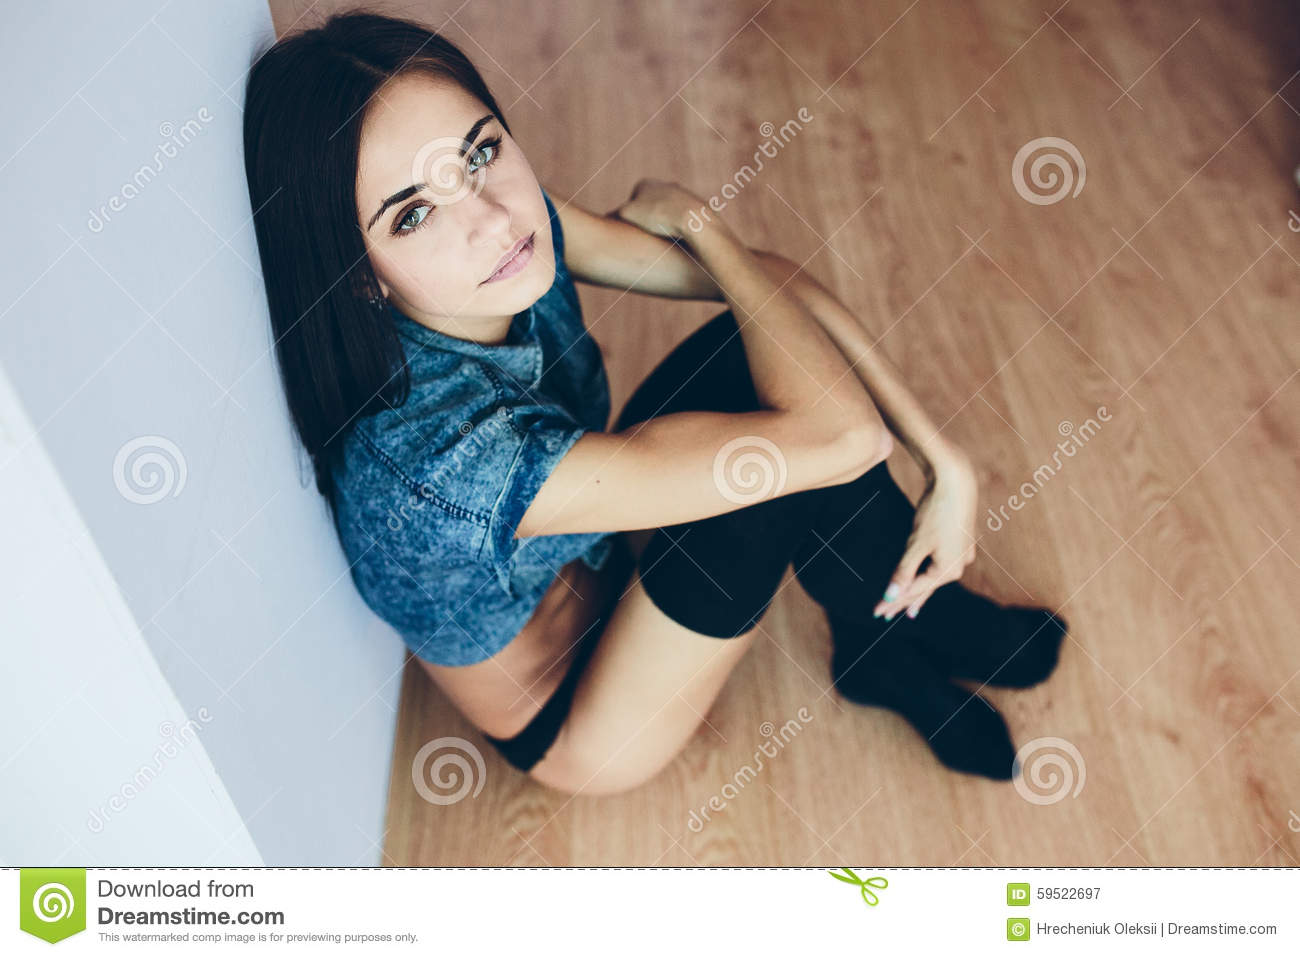 Young girls pose nude legs